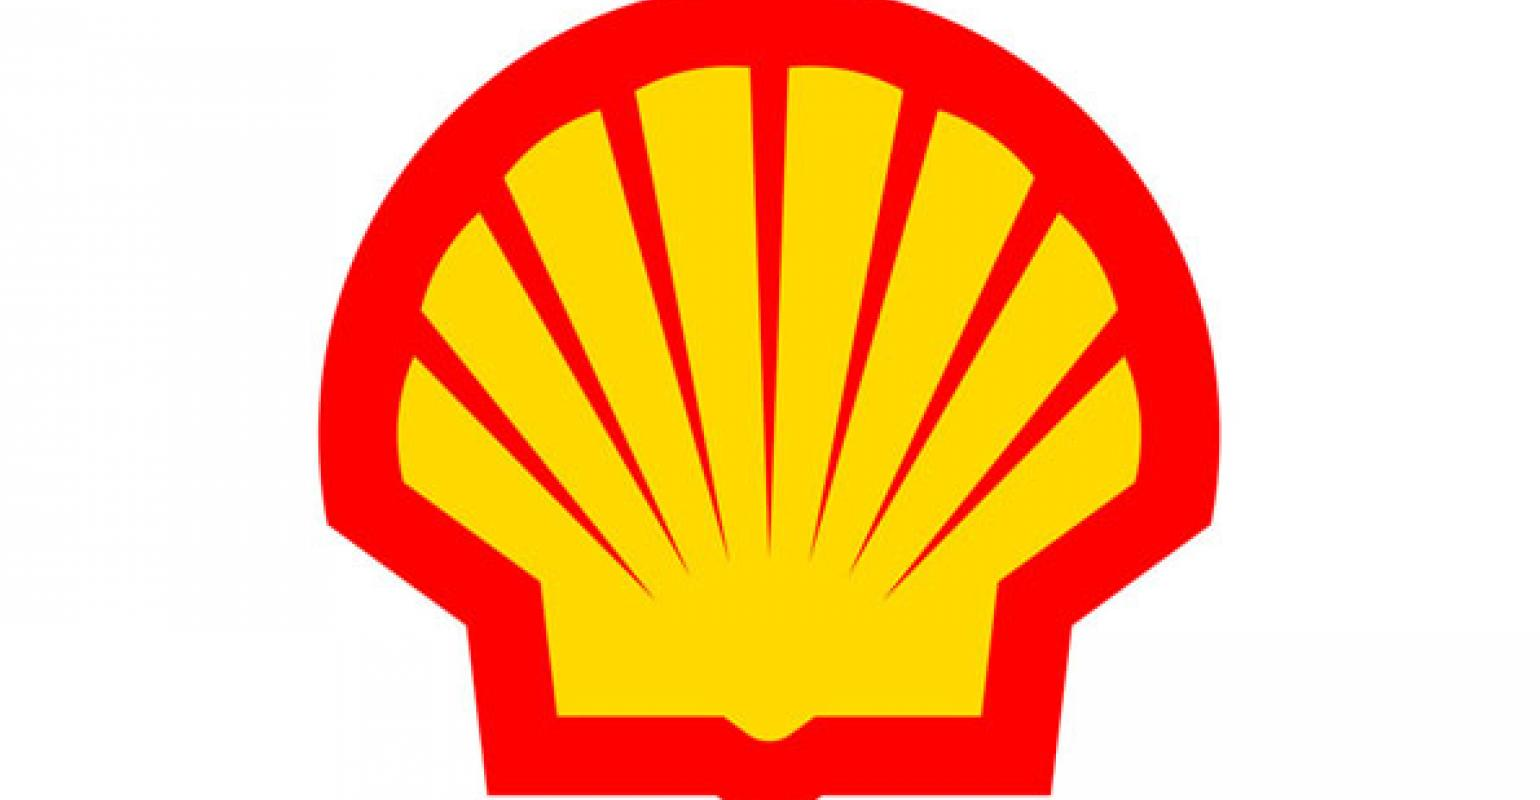 Gulf lng clipart clipart free Shell, Chevron to Swap LNG Assets in Australia | IndustryWeek clipart free